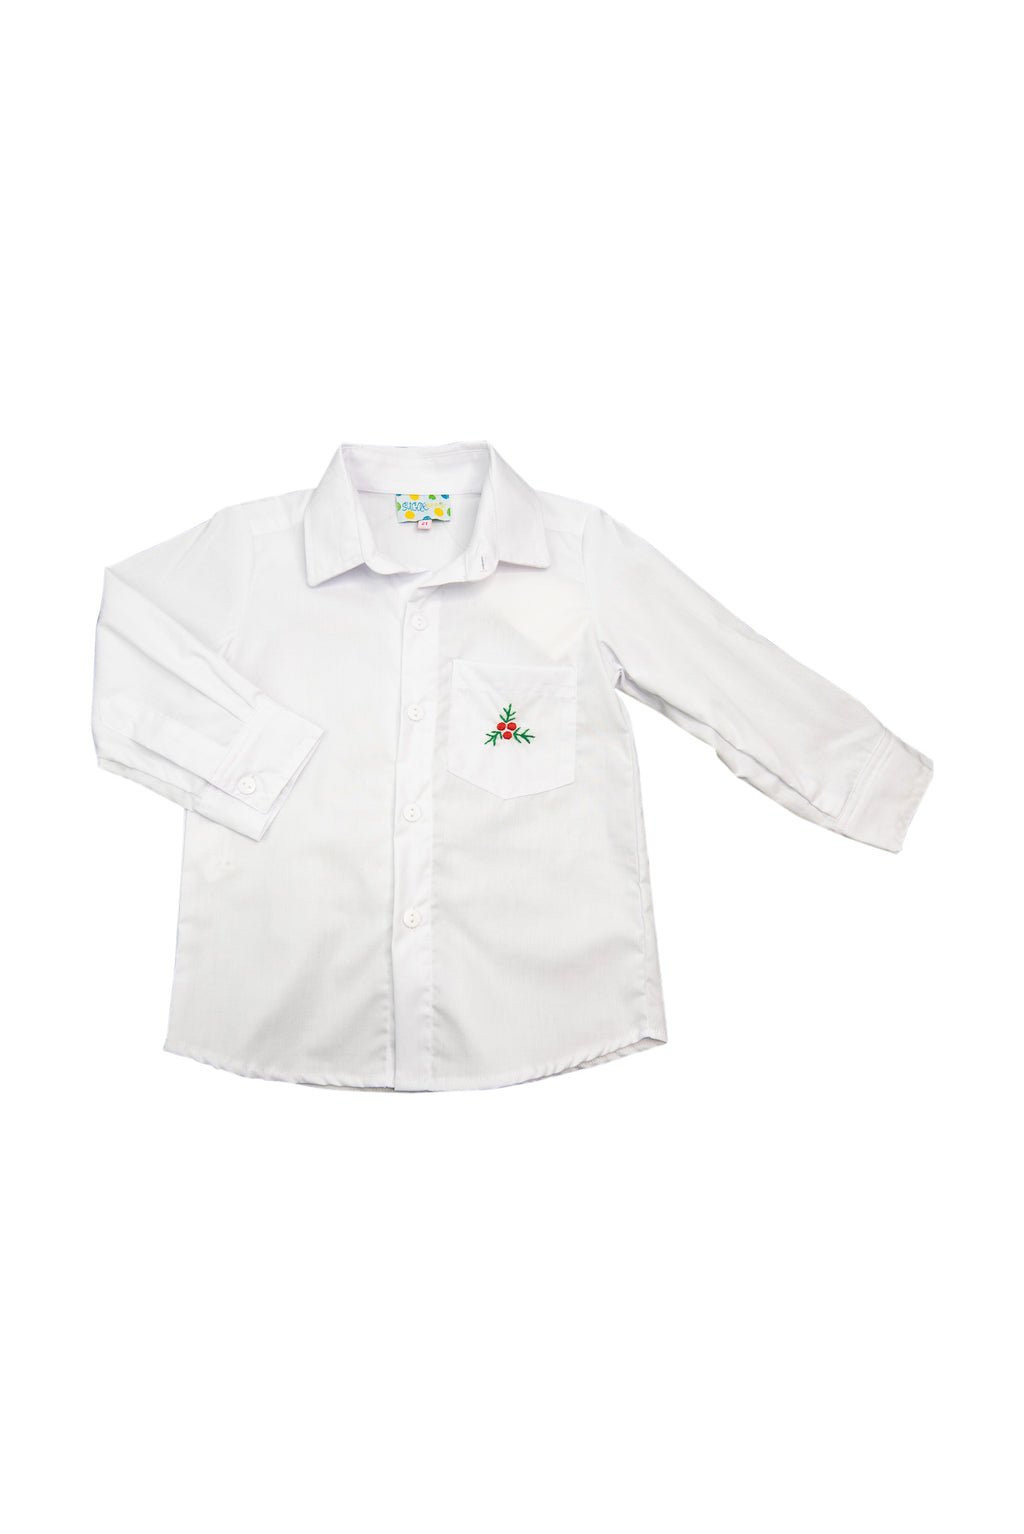 Boys White Holly Shirt Only